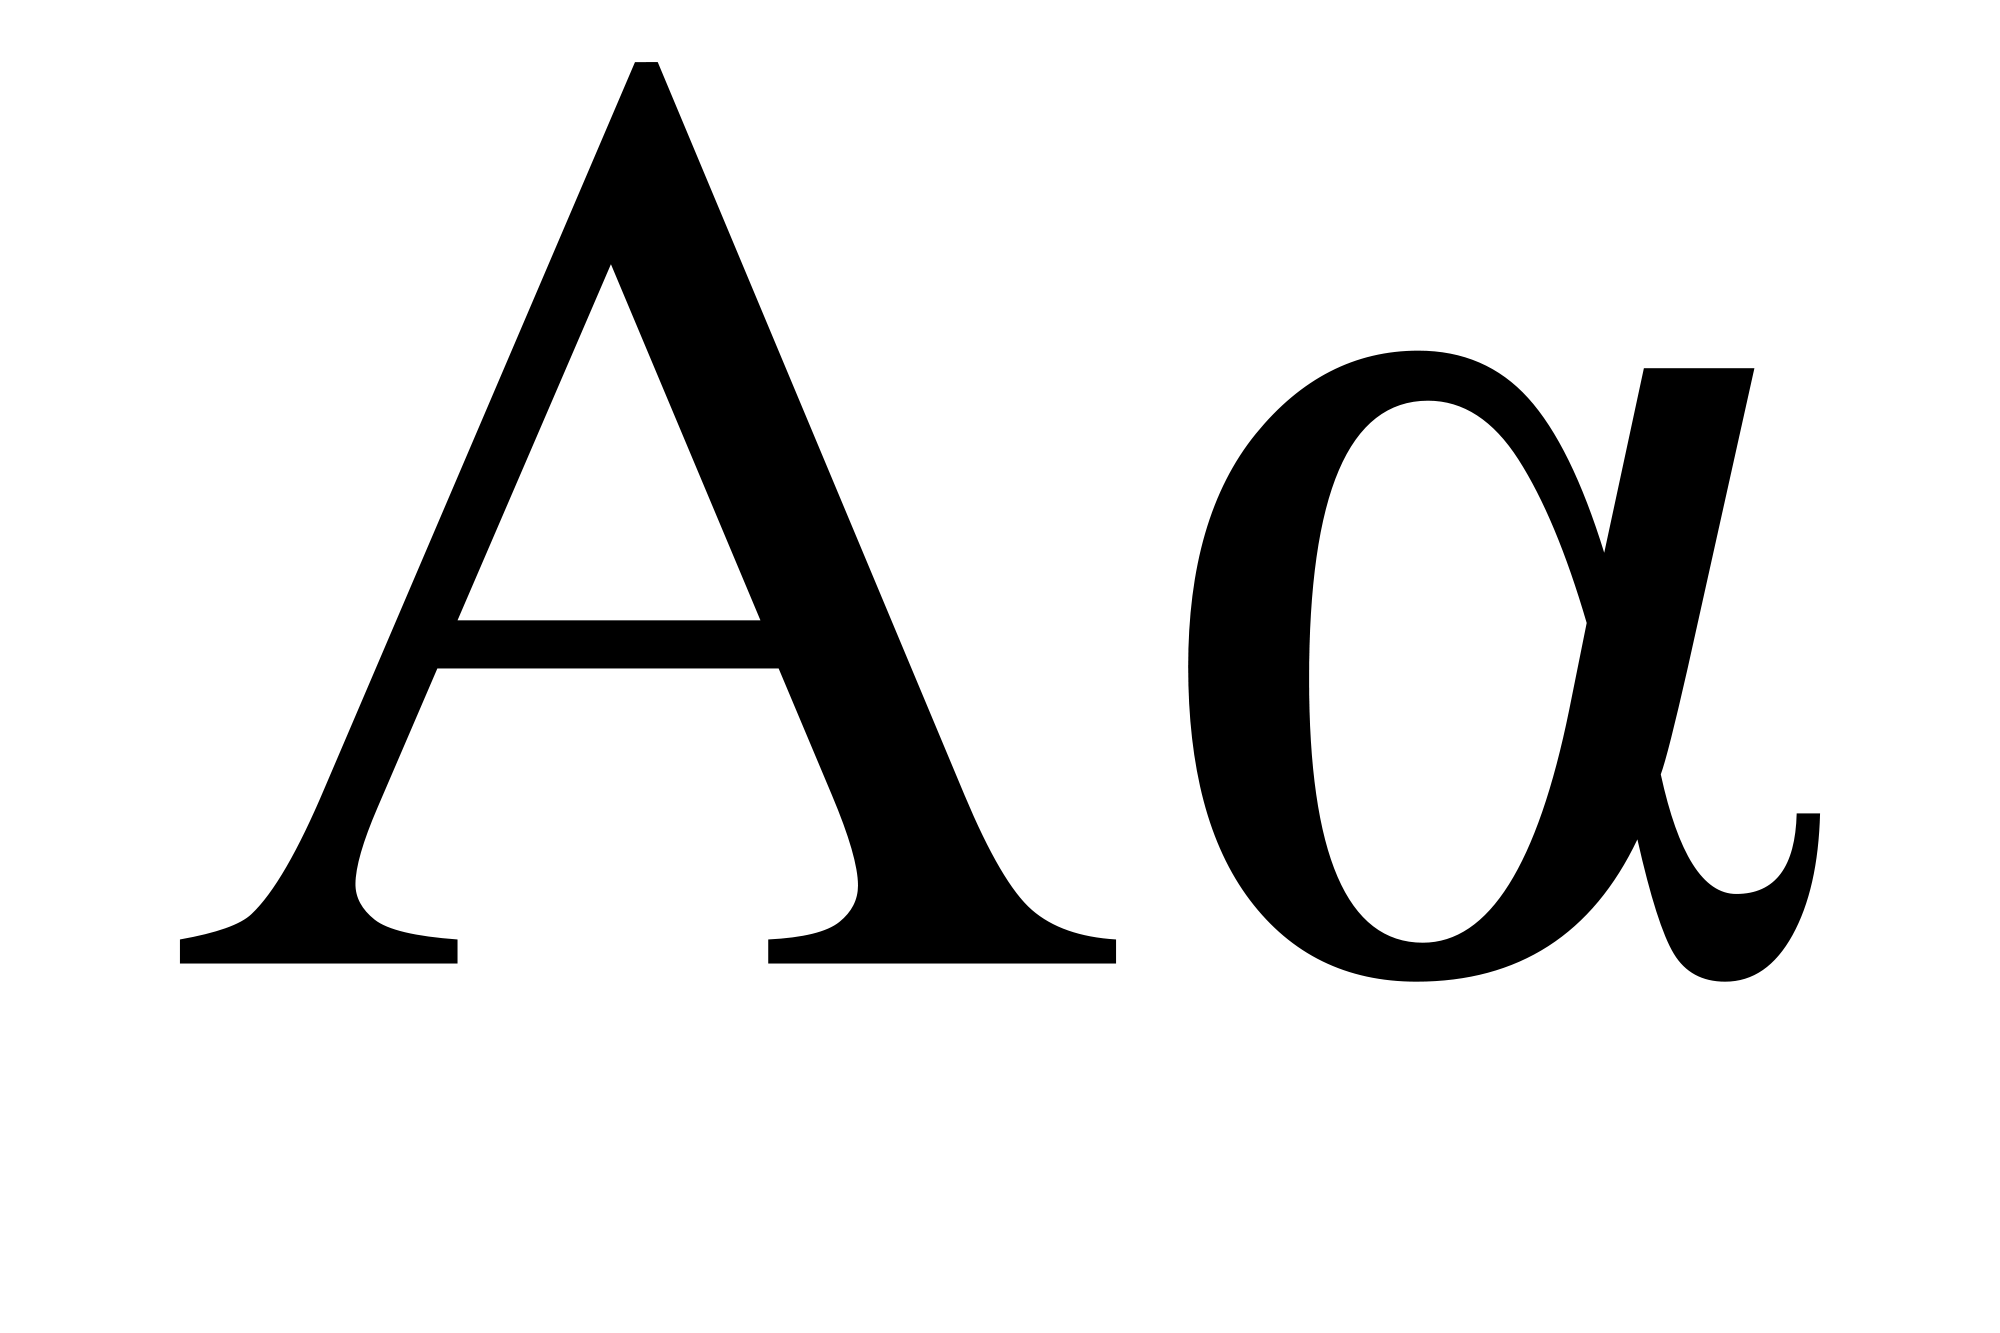 Greek letters png